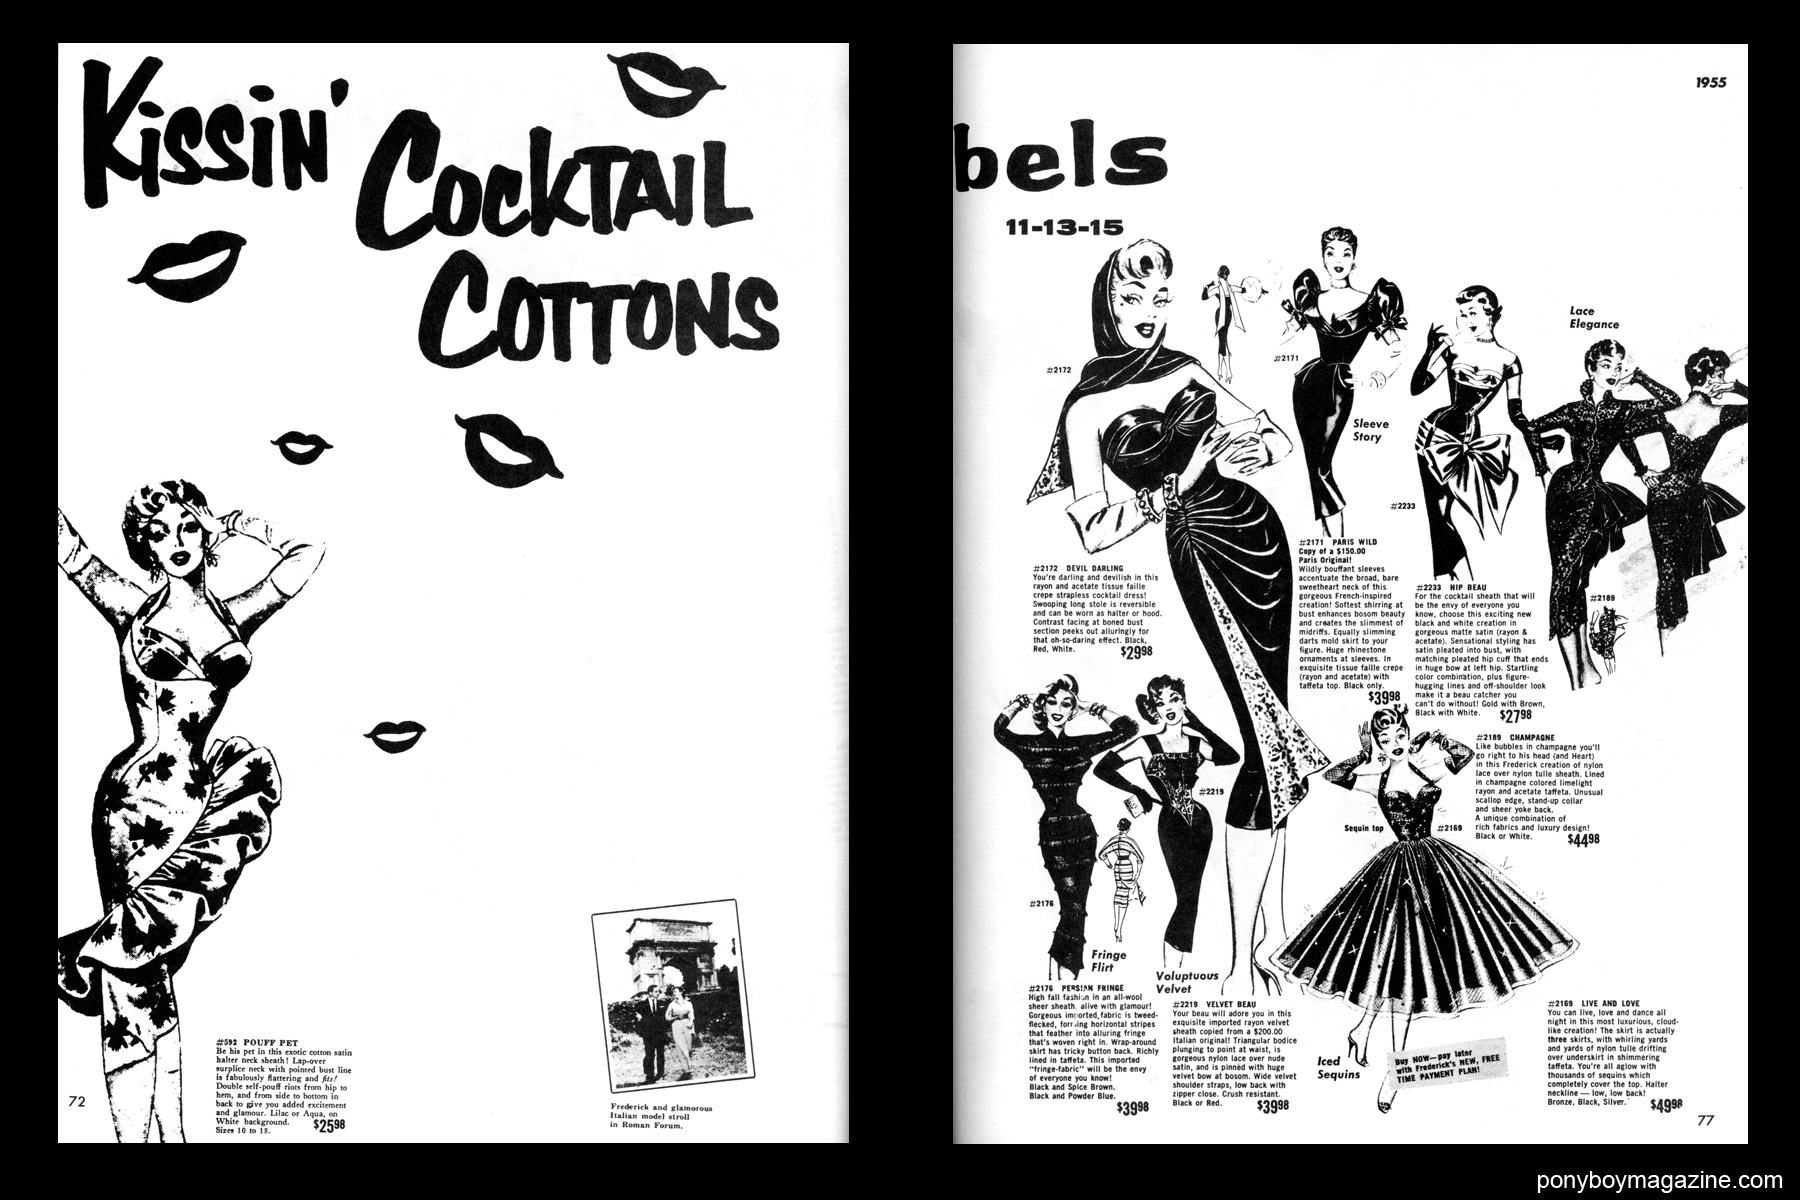 Glamorous vintage 1950's women's dress illustrations, FREDERICK'S OF HOLLYWOOD: 26 Years of Mail Order Seduction. Printed in 1973 by Drake Publishers. Edited by Laura & Janusz Gottwald, Ponyboy Magazine NYC.